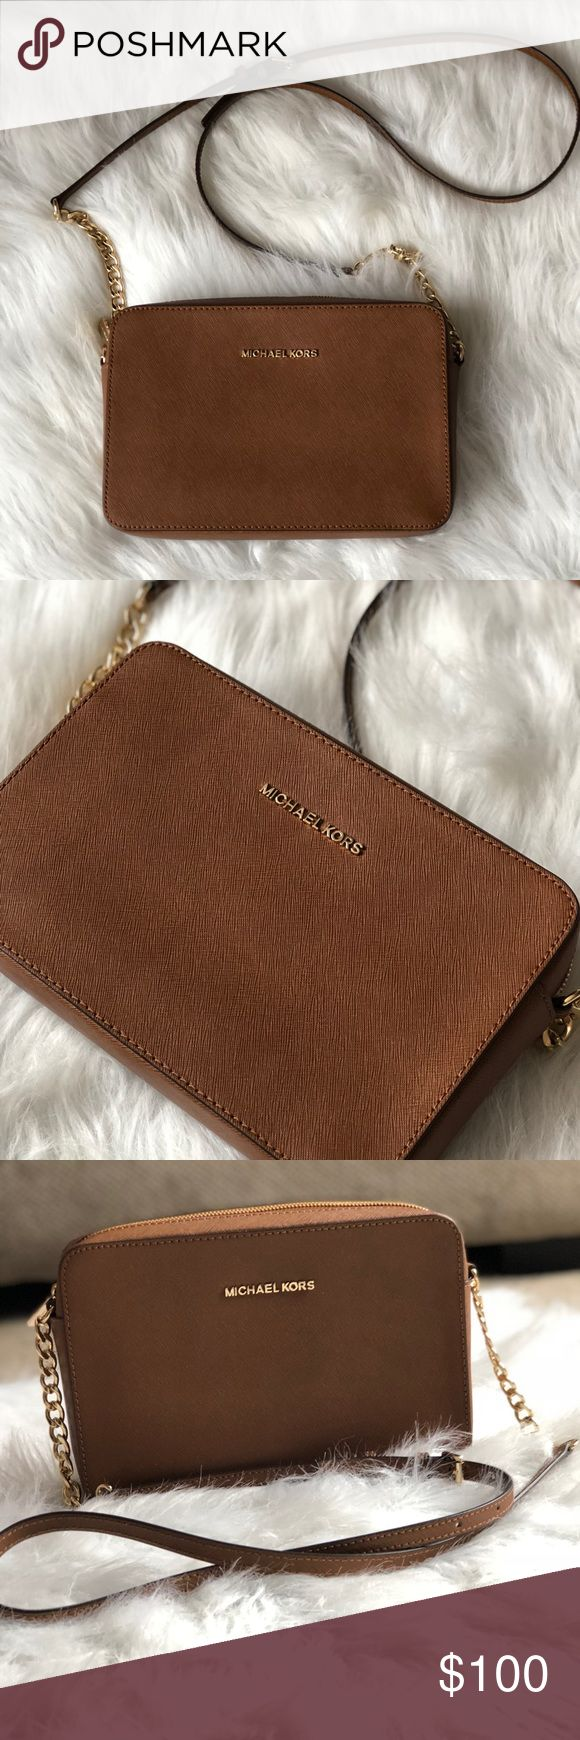 Micheal kors jet set travel large crossbody Micheal kors jet set travel large crossbody  •authentic Micheal kors crossbody •gently used in great condition  •no scratch or stain •brown •accepting reasonable offers Michael Kors Bags Crossbody Bags